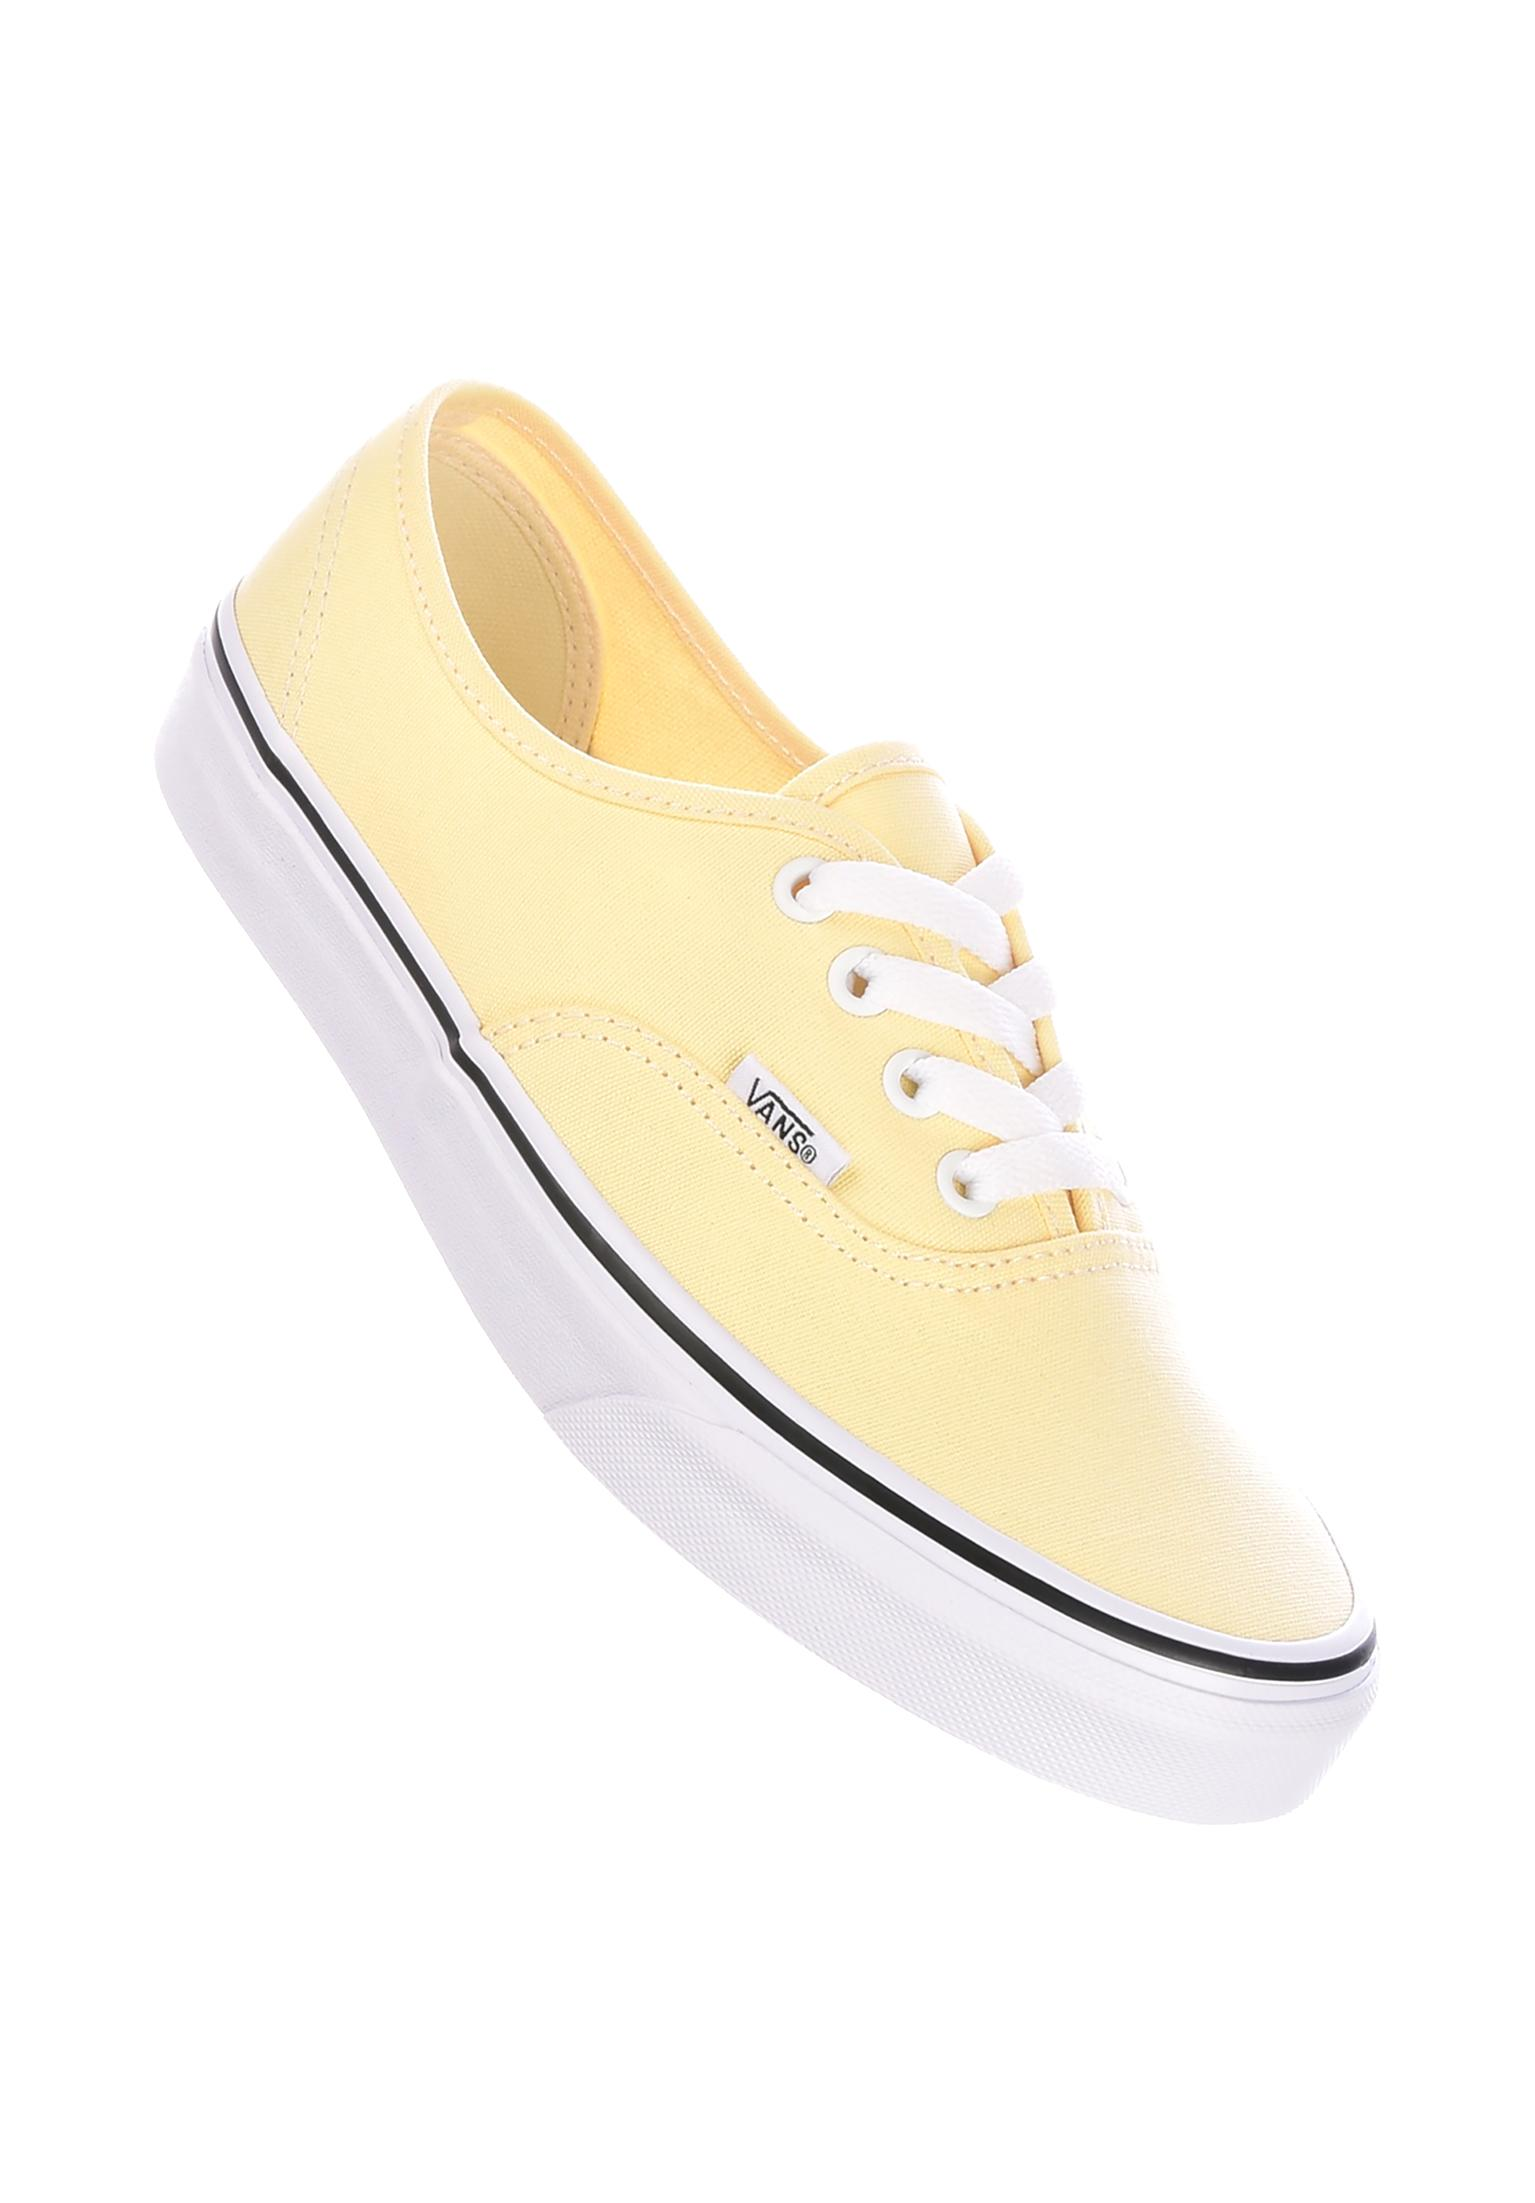 d197785e4479d5 Authentic Classic Vans All Shoes in vanillacustard-truewhite for Women